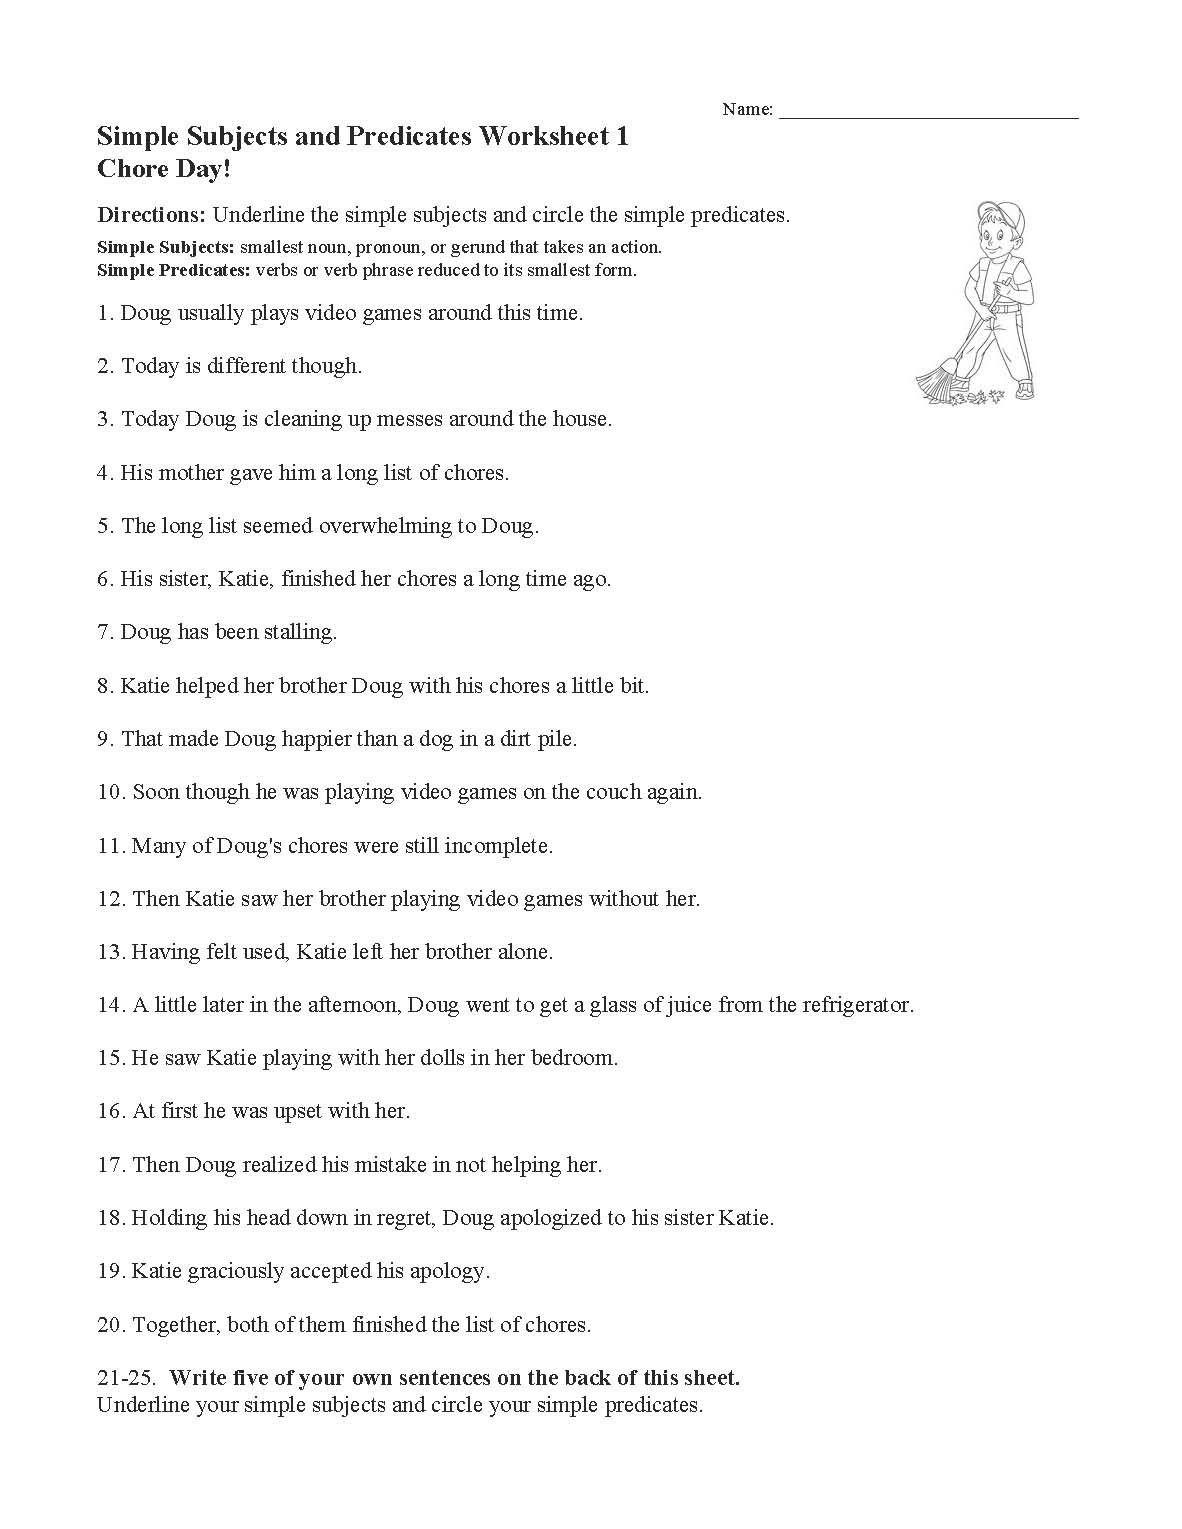 Simple Subjects And Predicates Worksheet 1